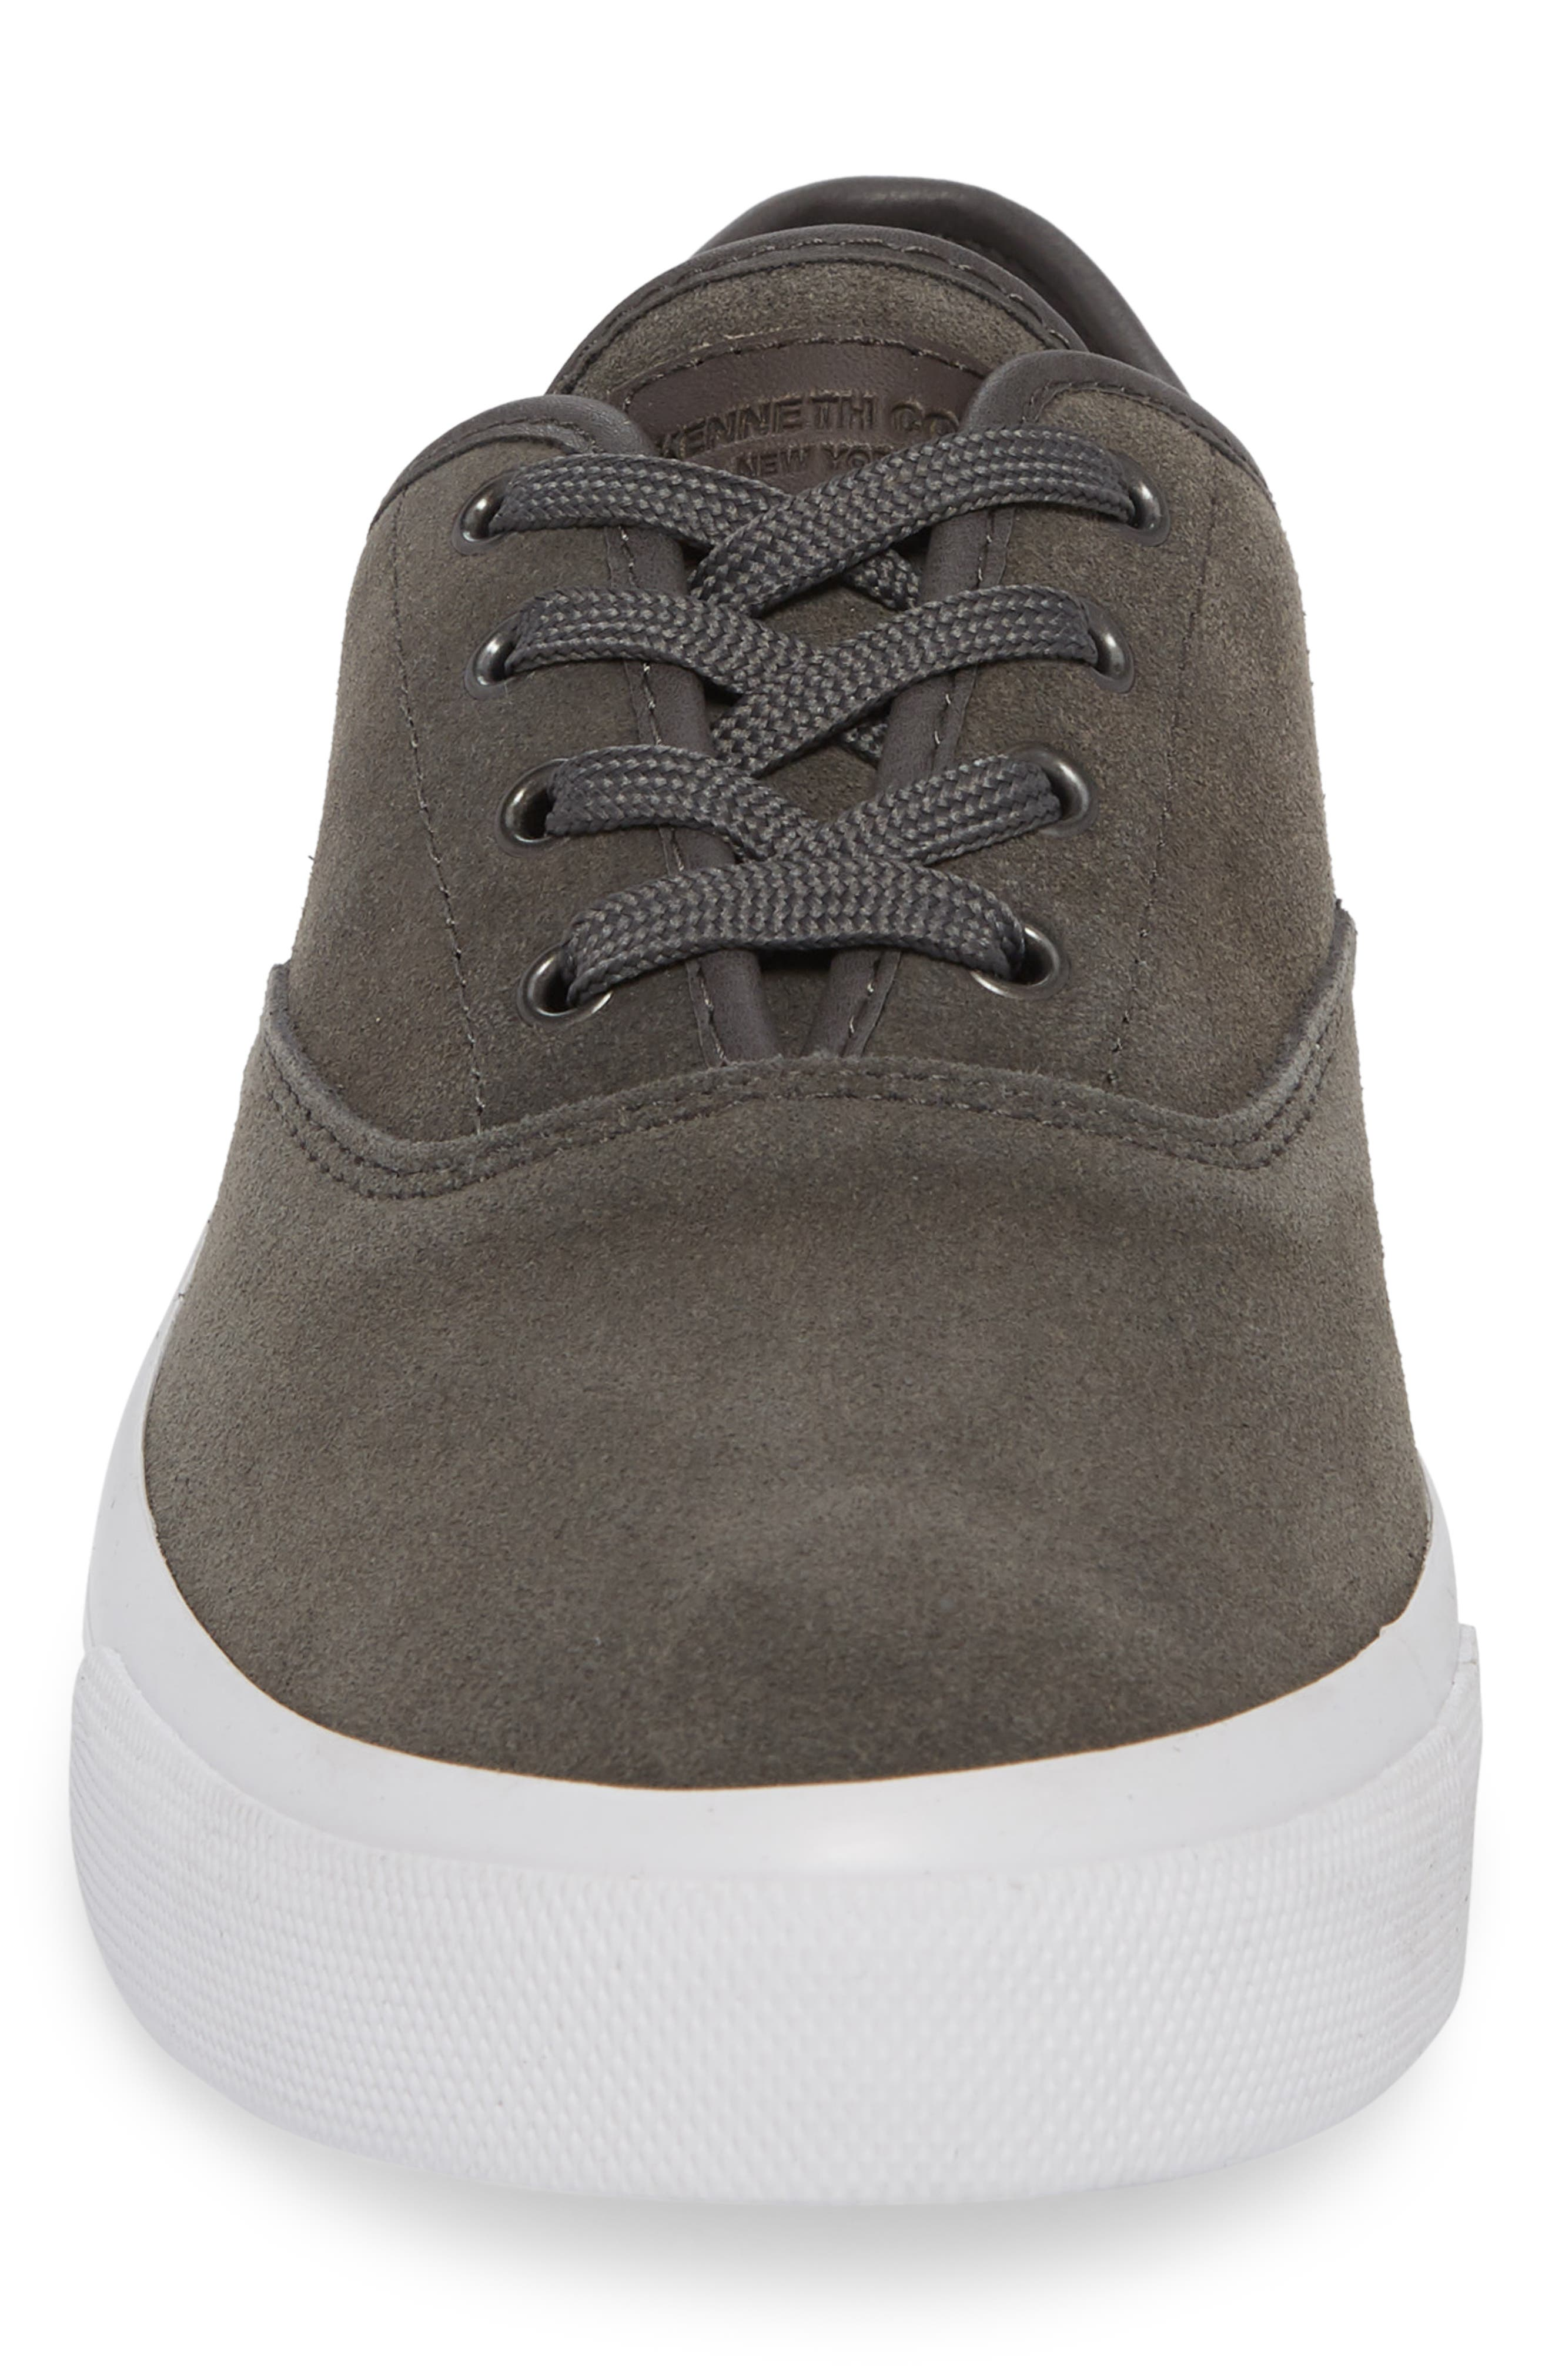 KENNETH COLE NEW YORK, Toor Low Top Sneaker, Alternate thumbnail 4, color, GREY COMBO SUEDE